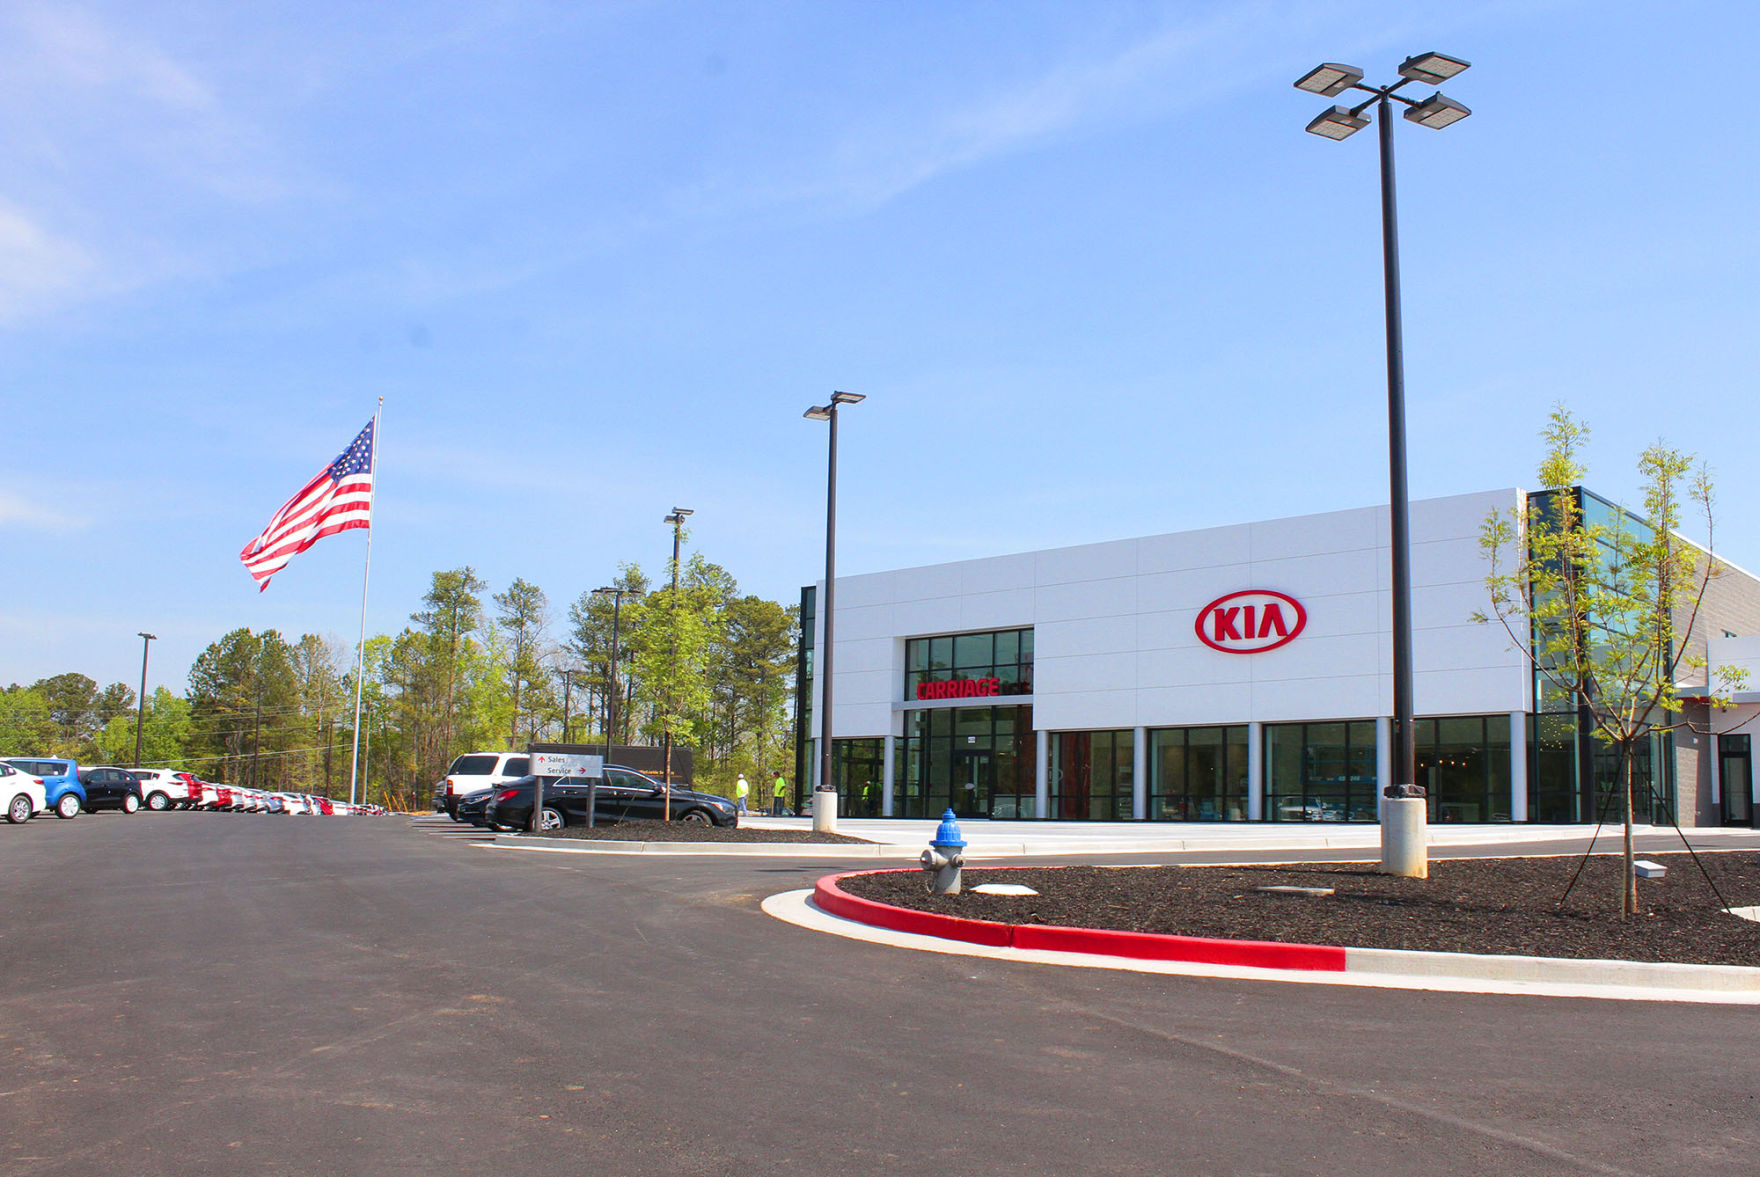 The New Carriage Kia Dealership Just Off I 575 Is Now Open With Its  U0027state Of The Art Buildingu0027 In Woodstock.